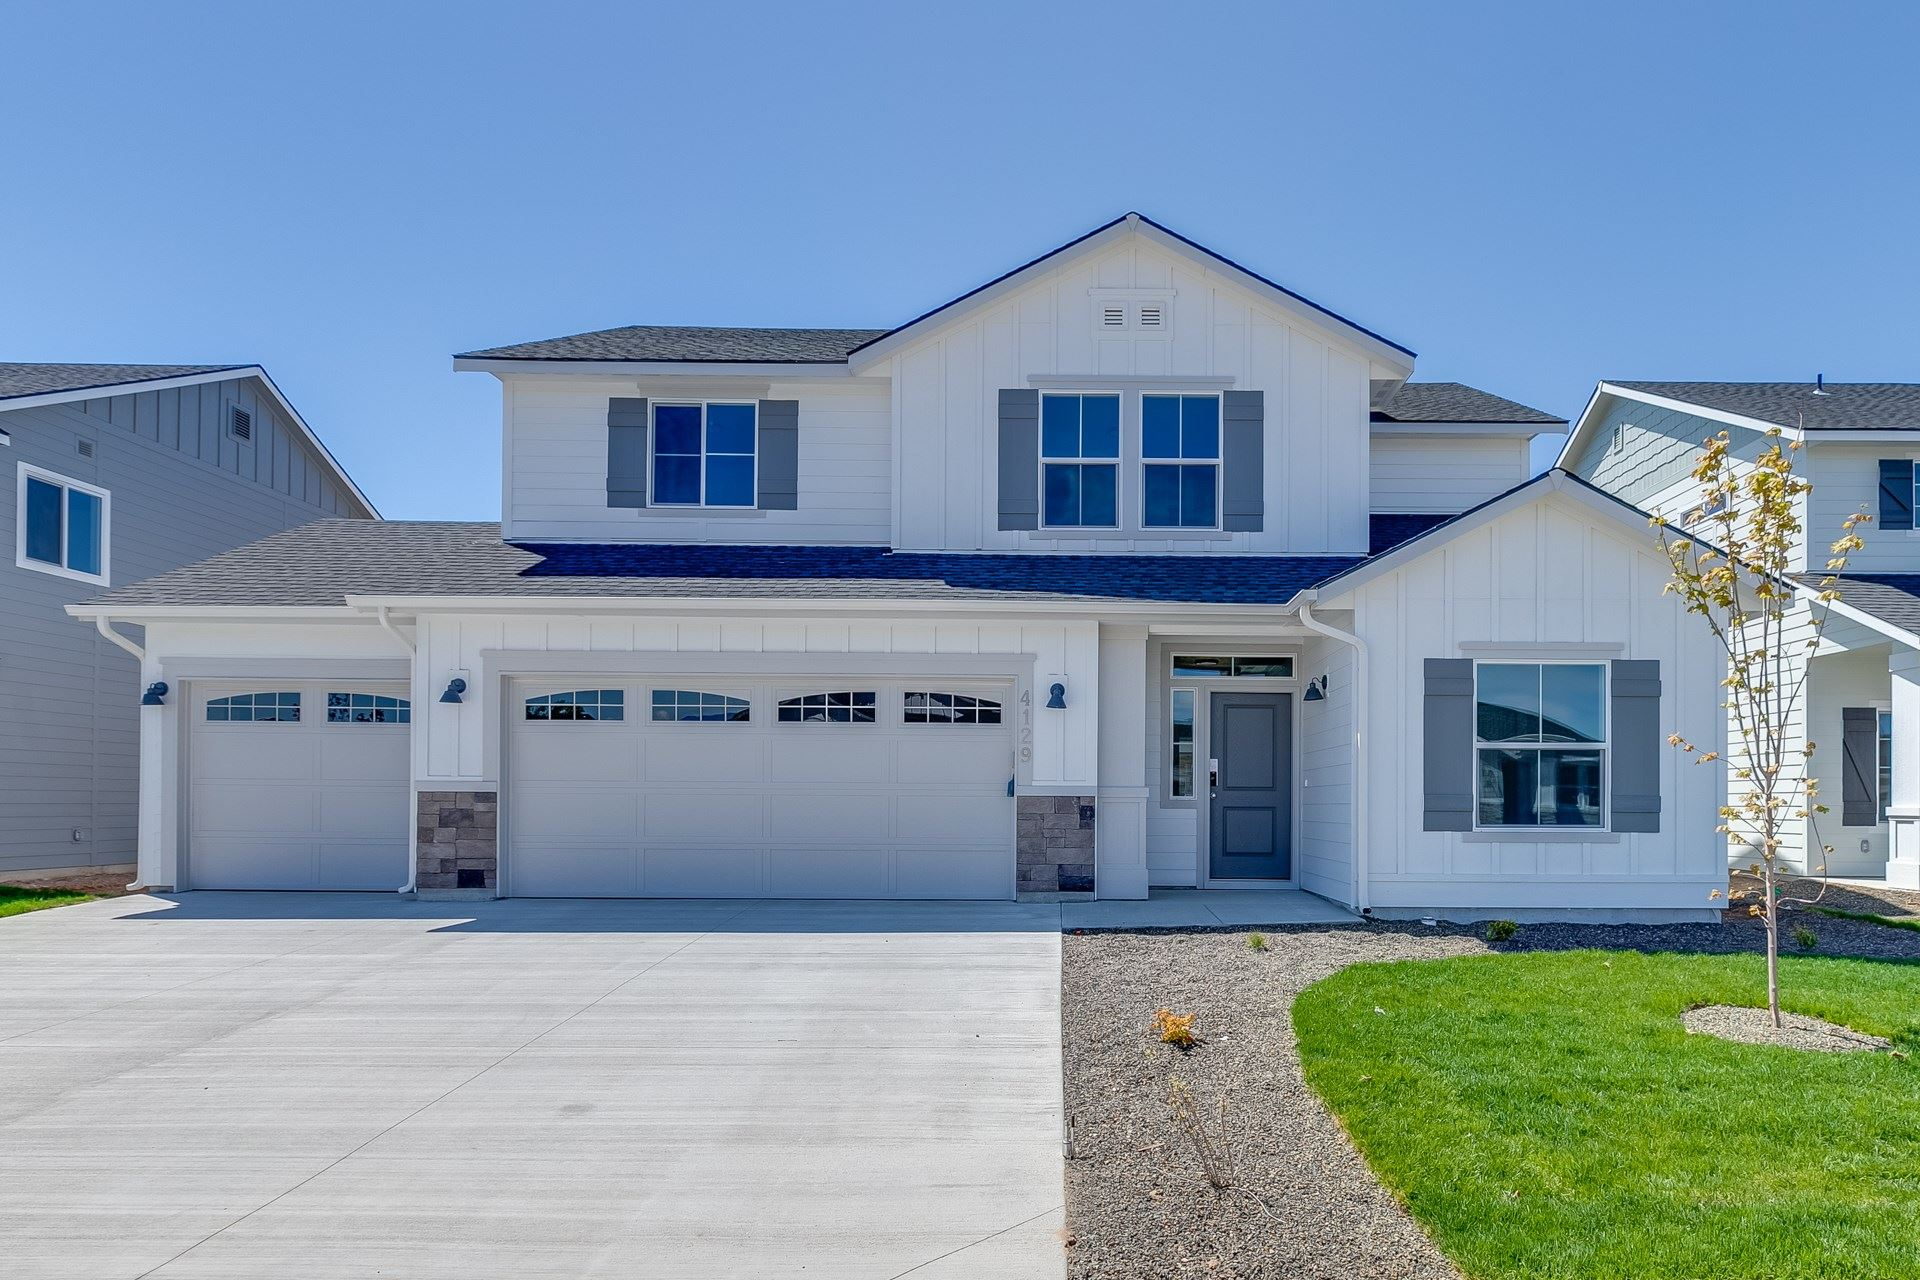 785 Grizzly Dr, Twin Falls, ID 83301 - MLS#: 98766734